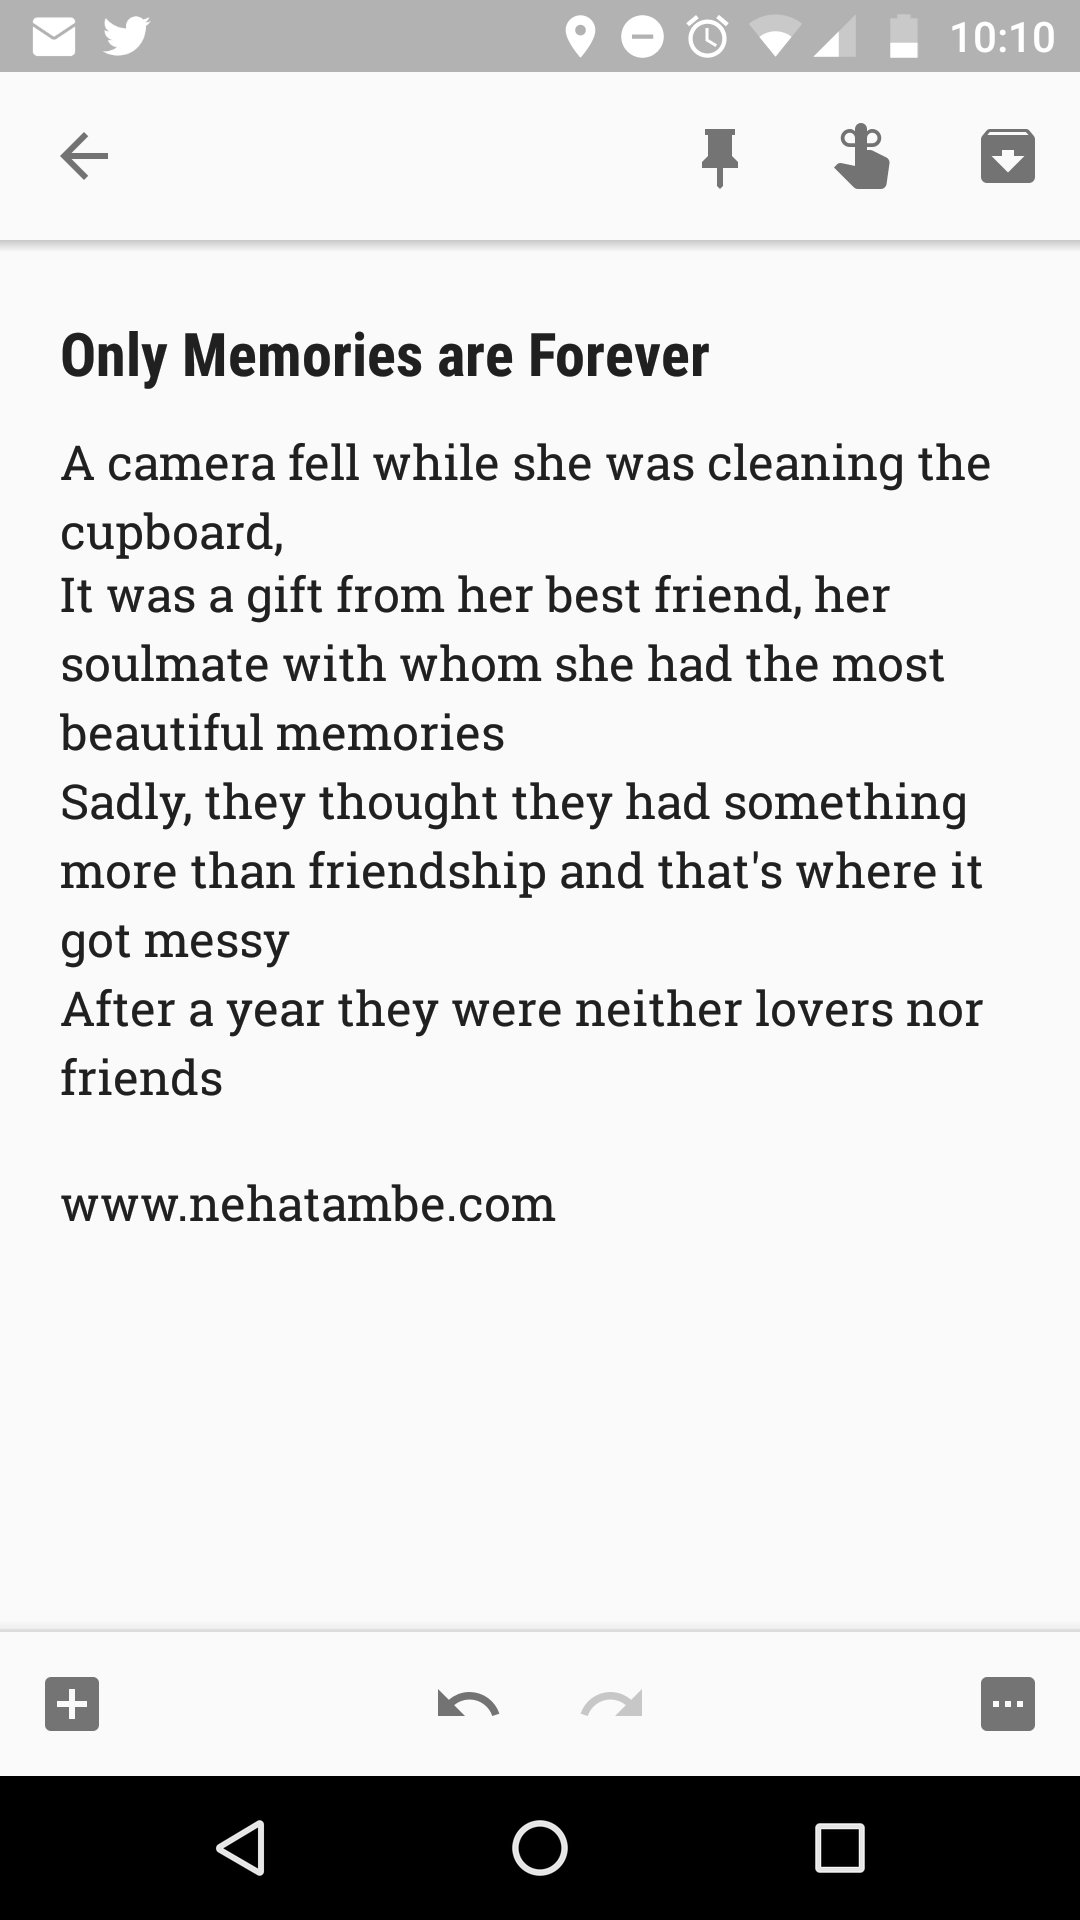 #Tiniature #amwriting #BeingAuthor #story  #microfiction #flashfiction #FridayFiction @VeryShortStory @gayatri_gadre @Ishieta https://t.co/hIKm973QBD